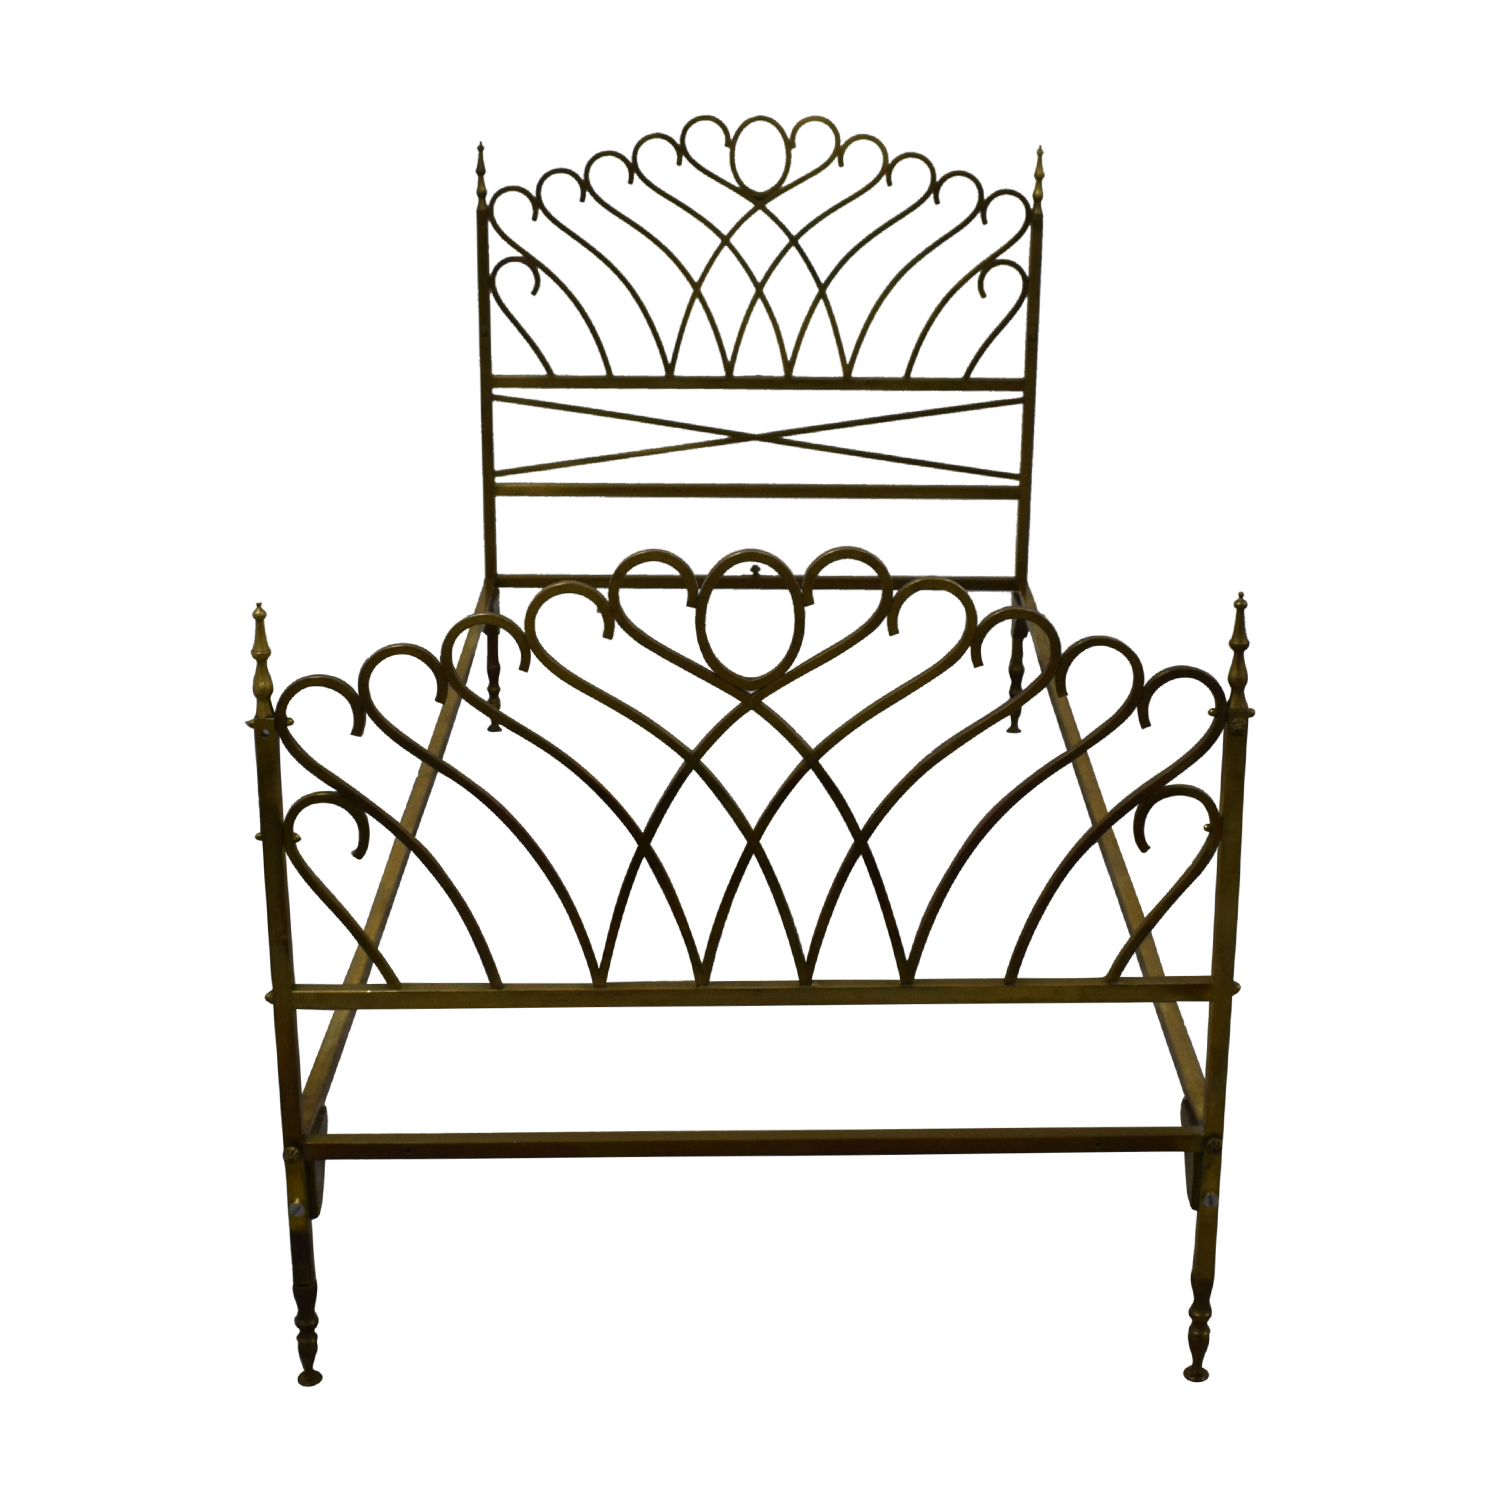 Scrolled Brass Twin Bed Frame second hand